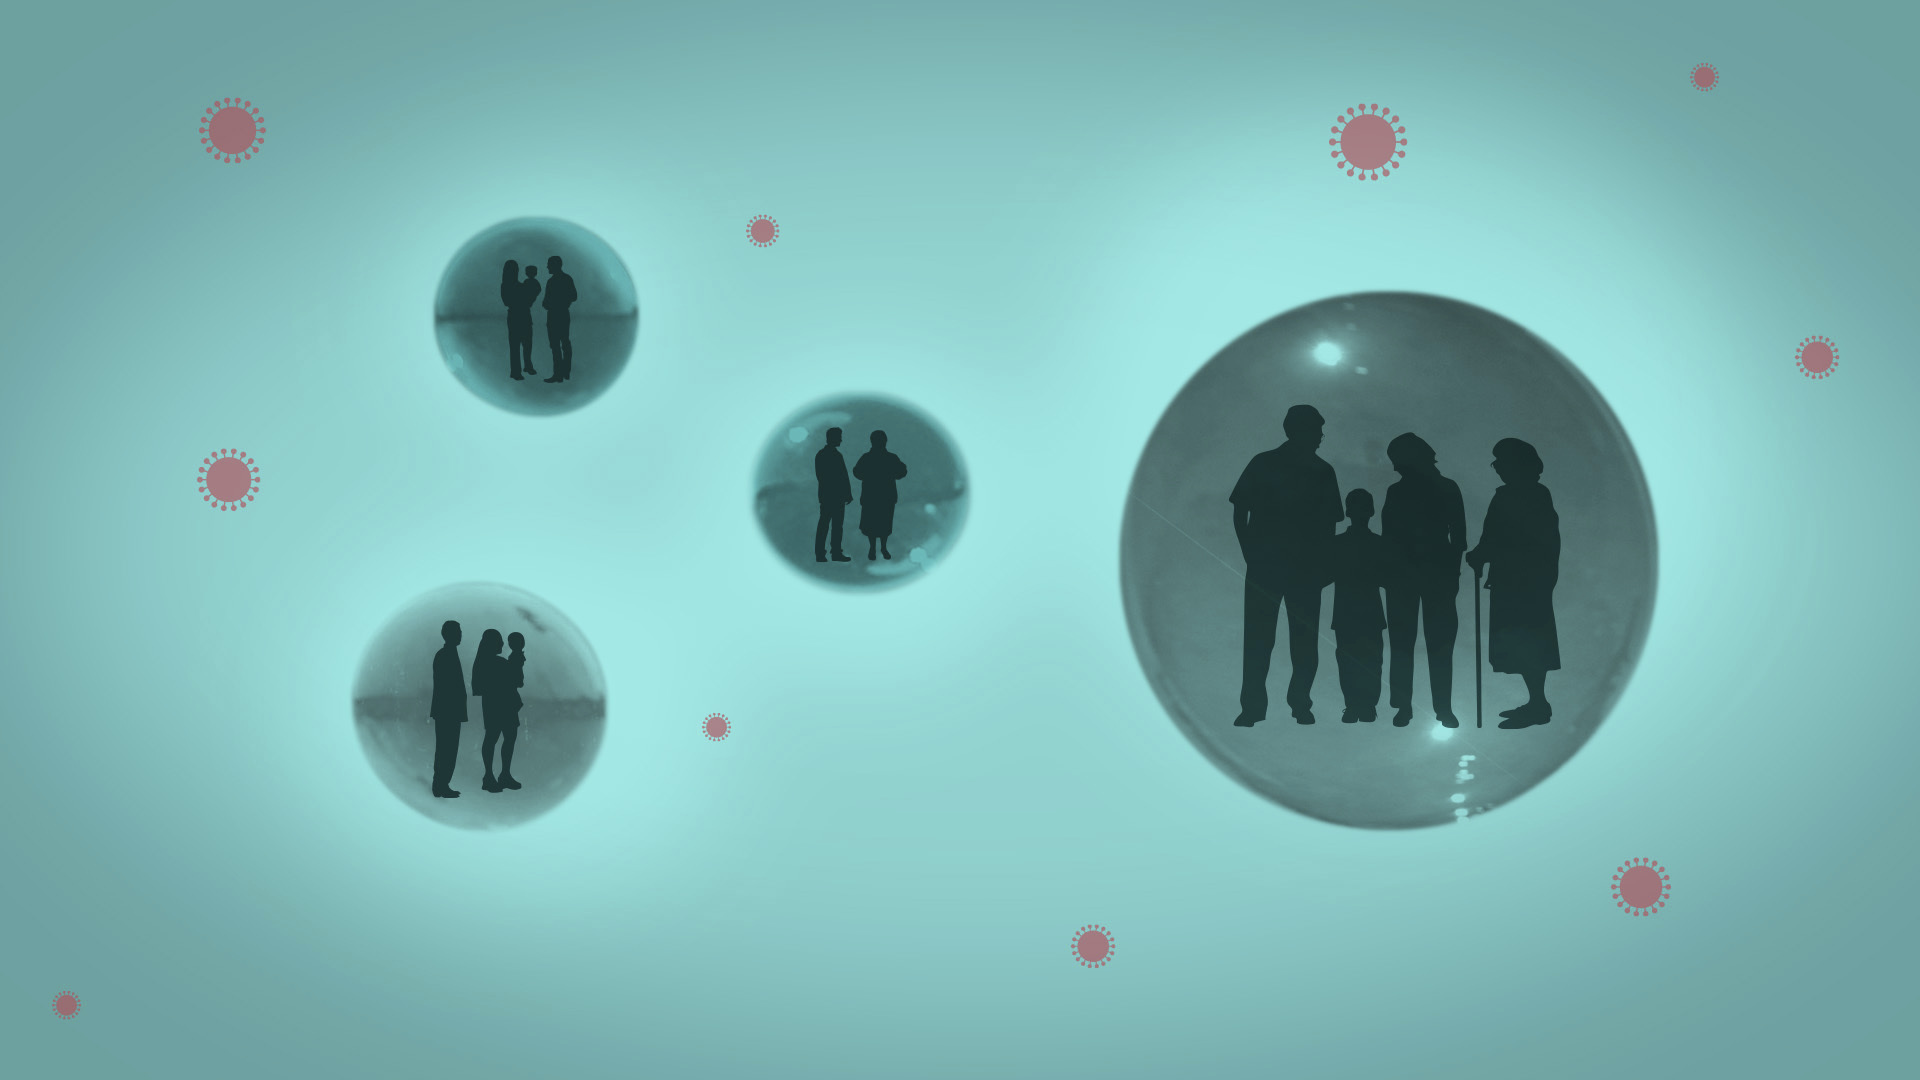 VIRUS OUTBREAK VIRAL QUESTIONS SUPPORT BUBBLE